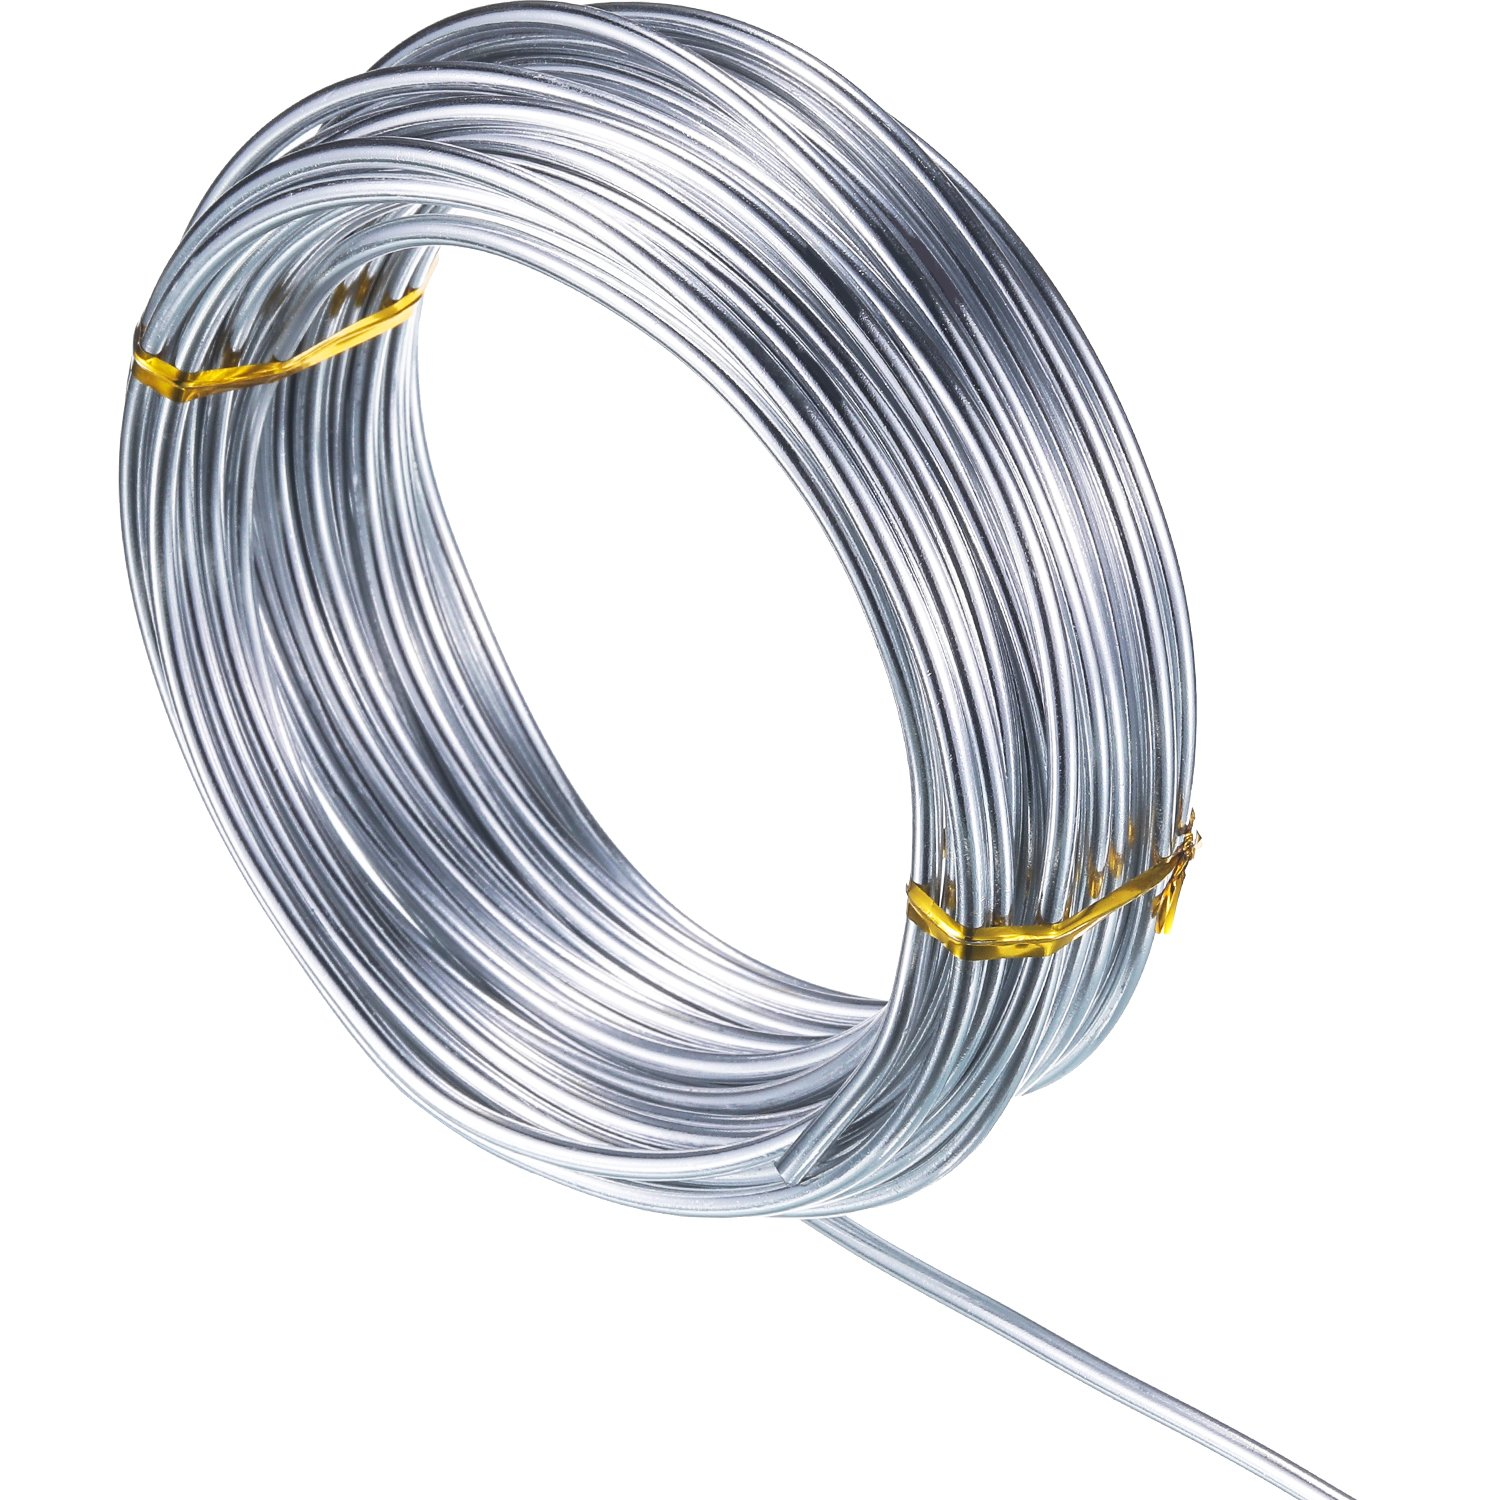 Amazon.com: TecUnite 32.8 Feet Silver Aluminum Wire, 3 mm Thickness ...